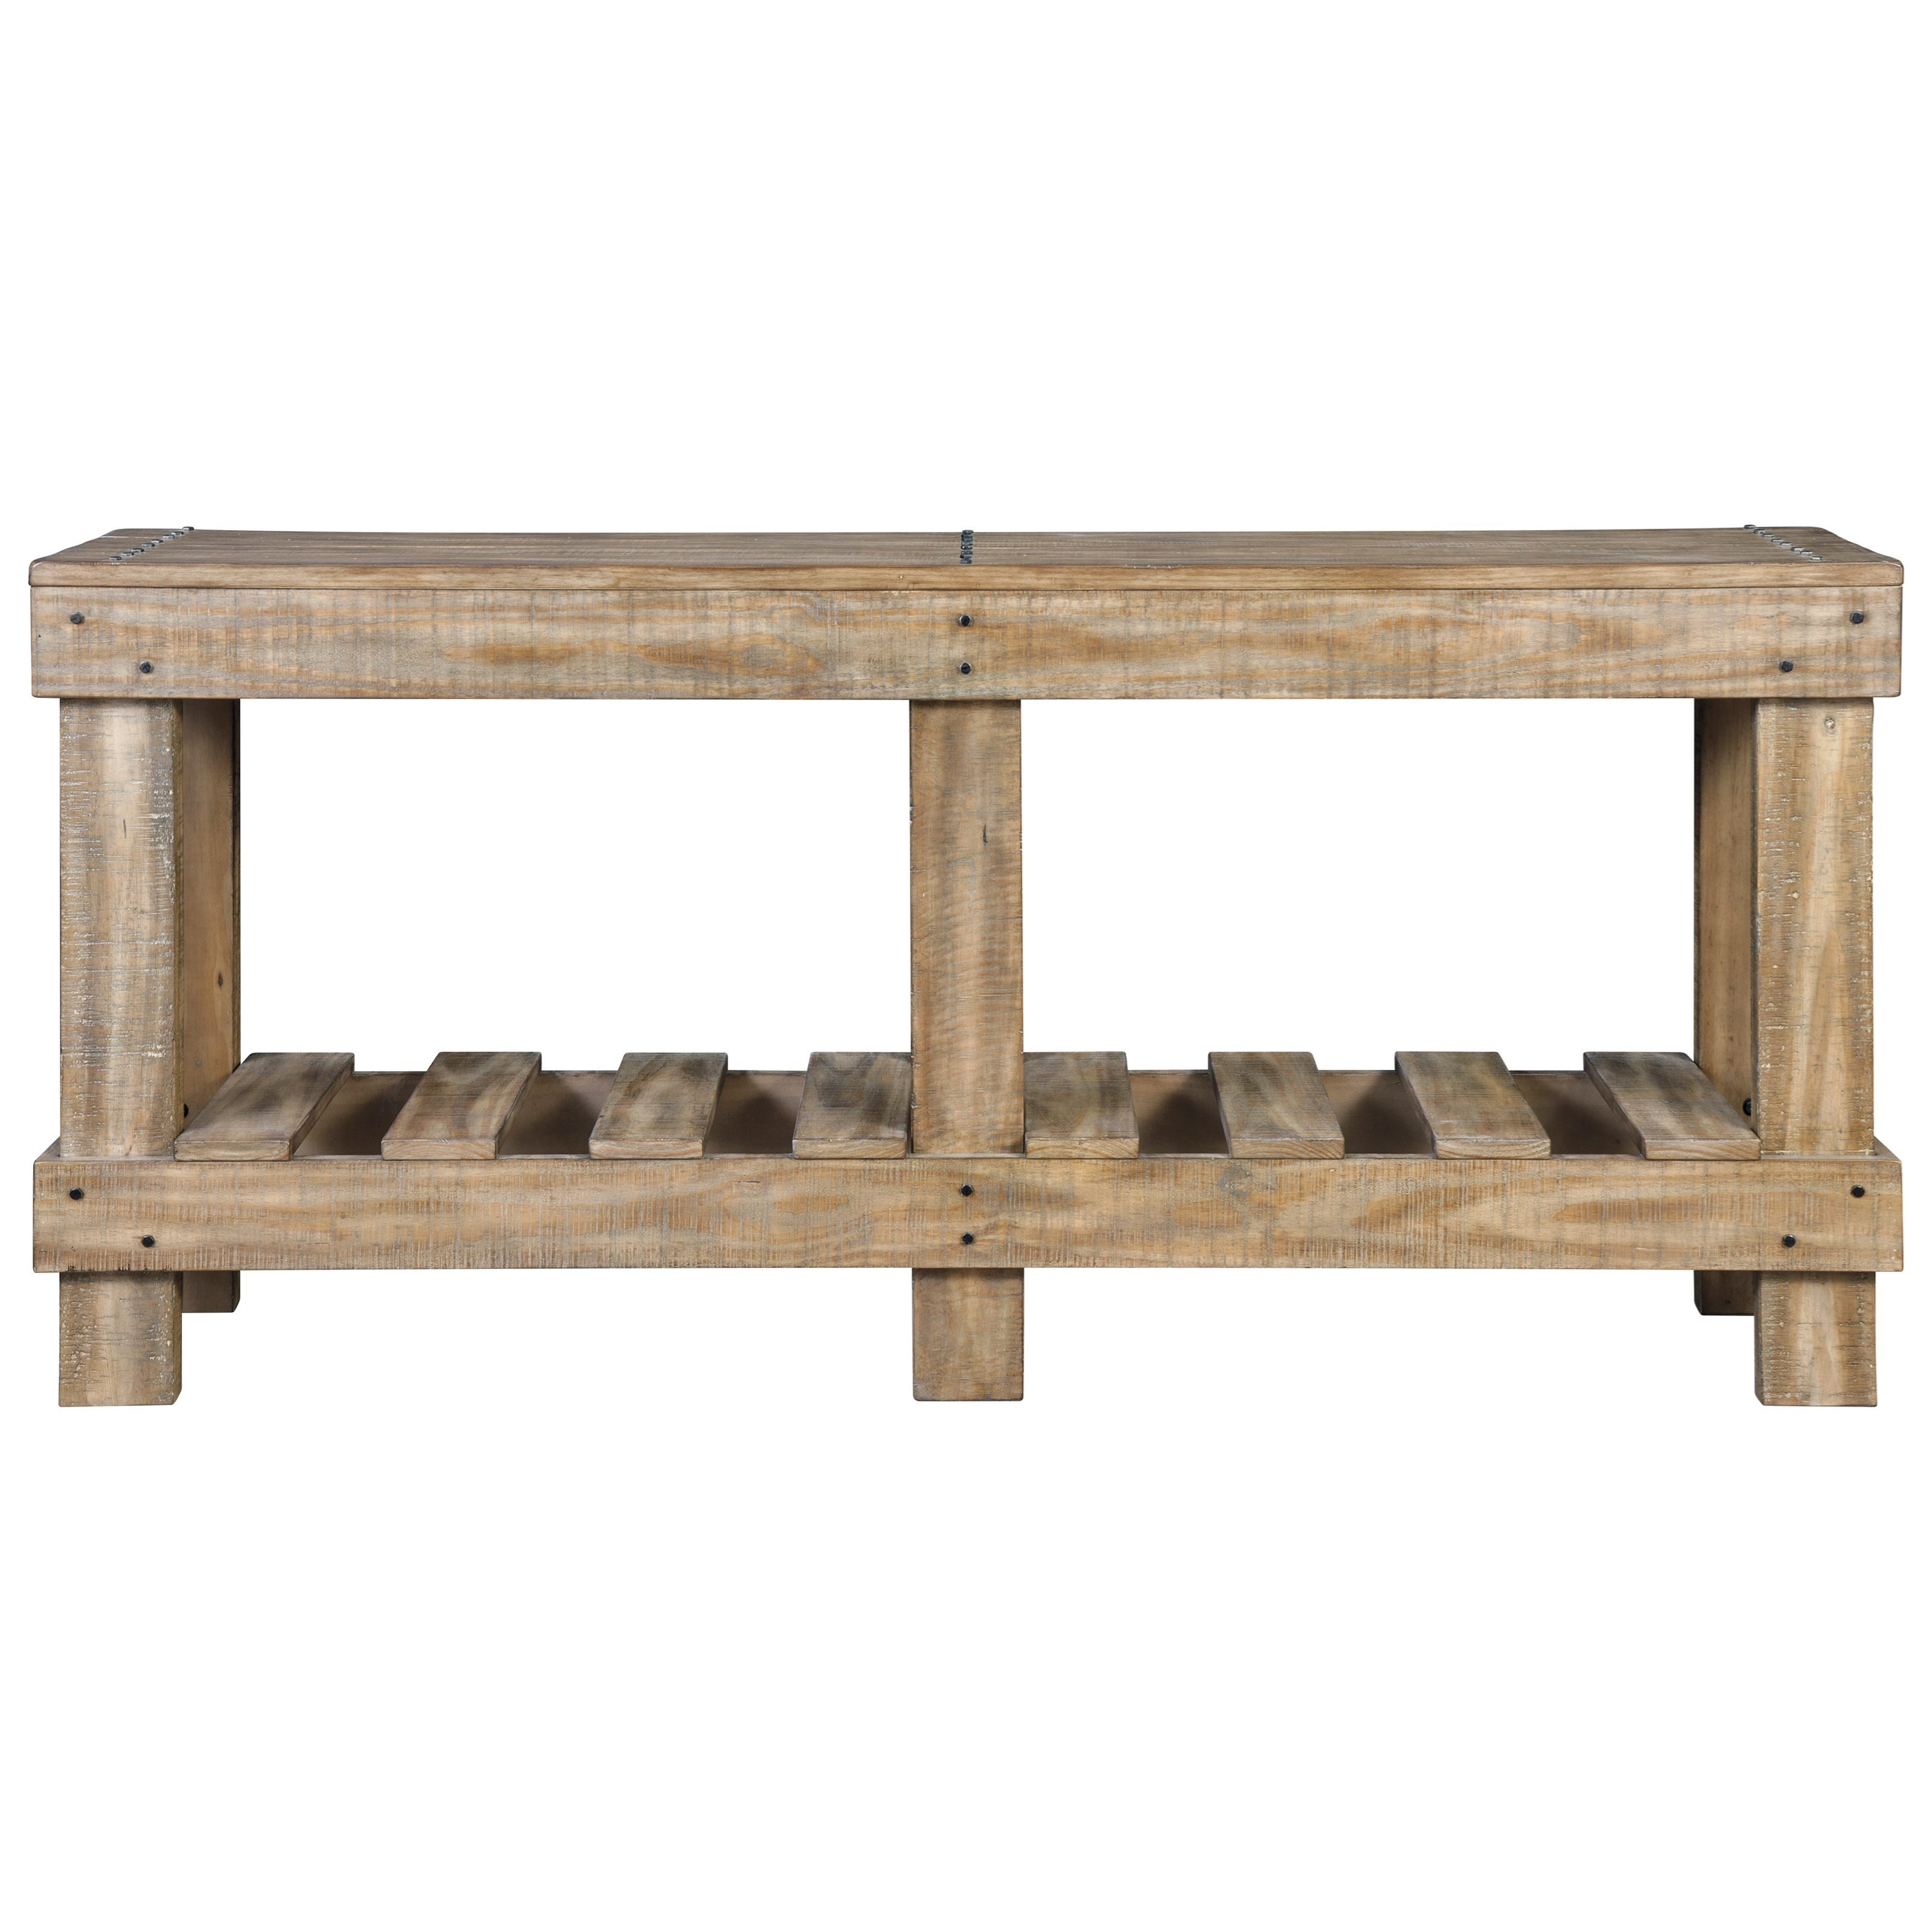 Signature Design By Ashley Susandeer Solid Wood Rustic Console Sofa Table With Slat Shelf Royal Furniture Sofa Tables Consoles